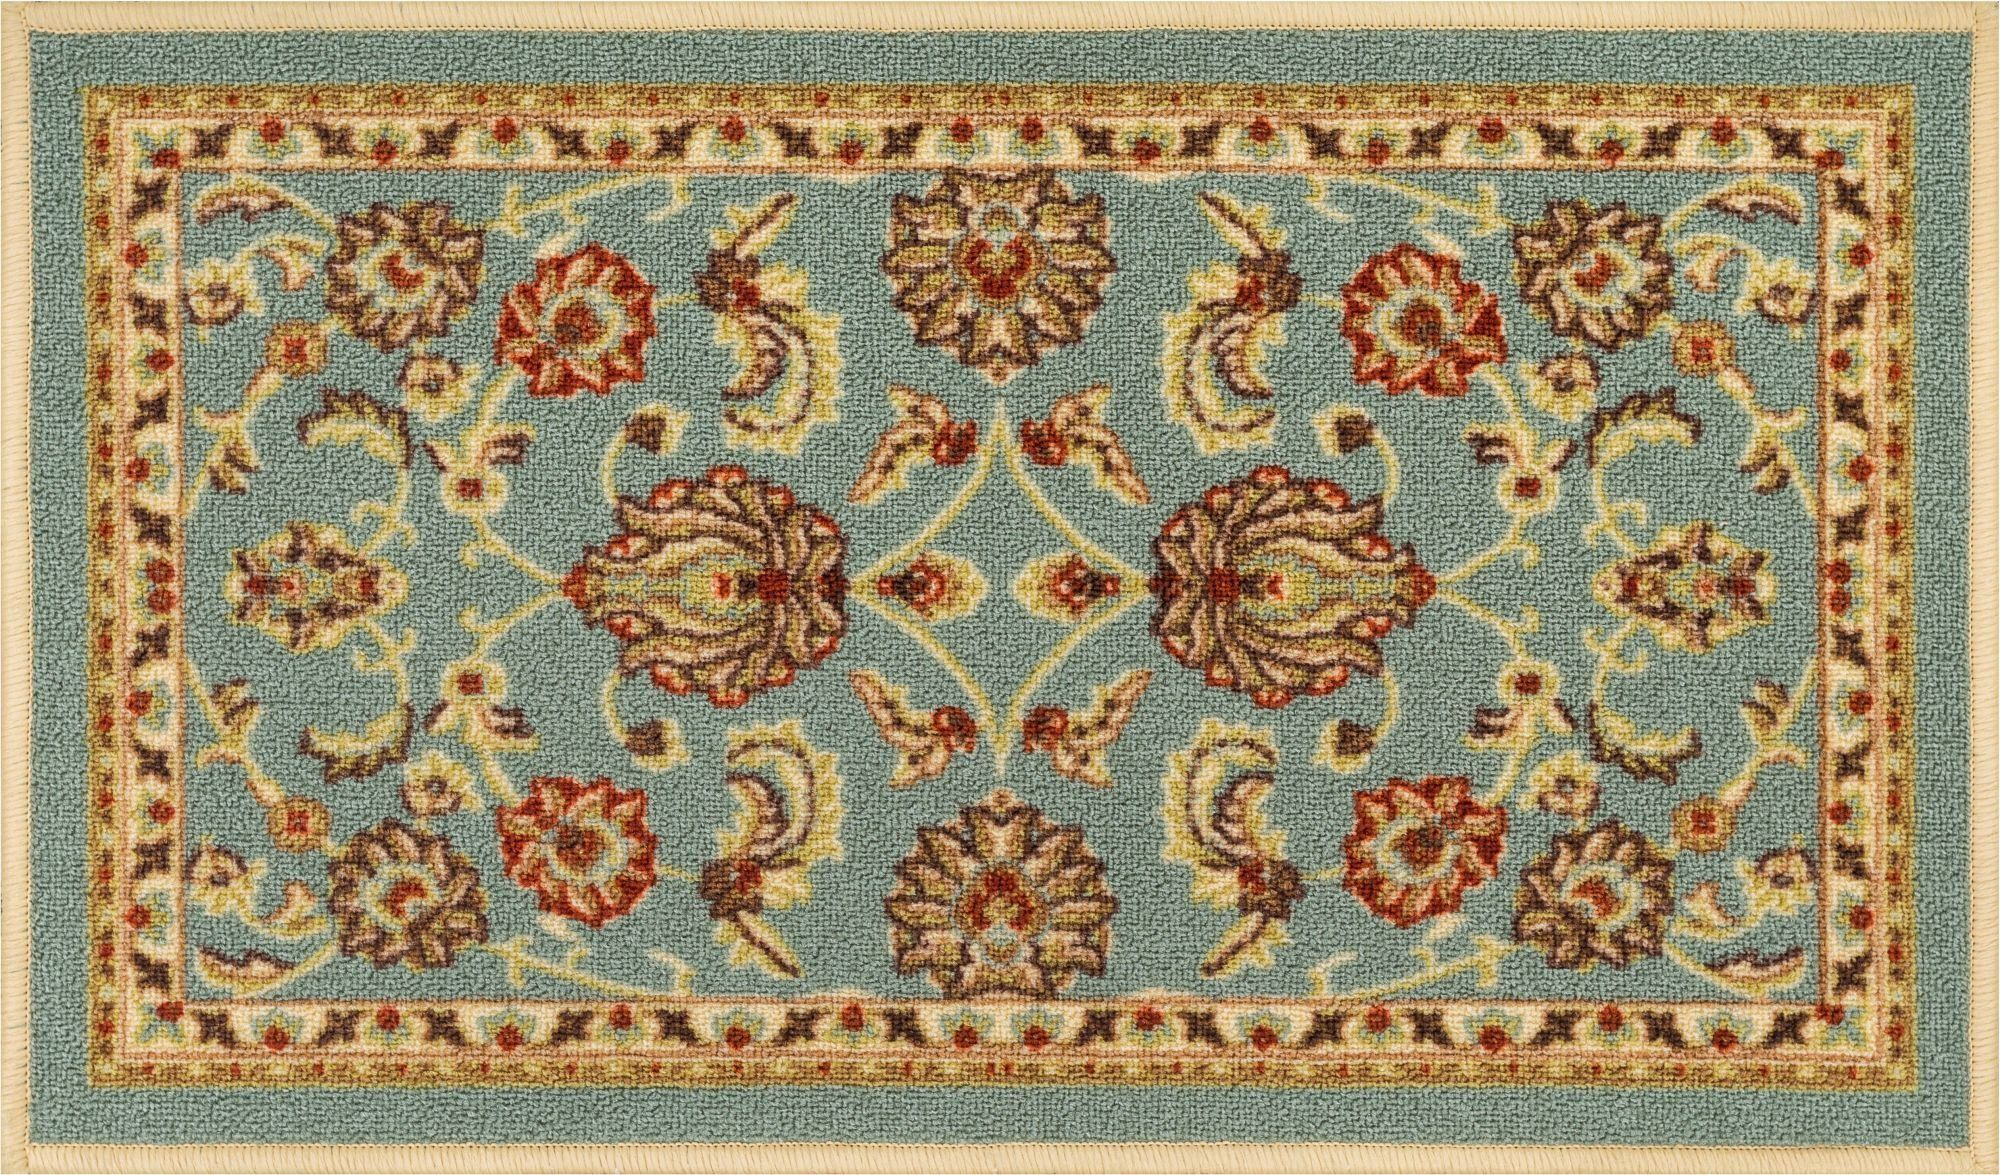 Well Woven Nonskid Slip Rubber Back Antibacterial 3x12 27 X 12 Runner Rug Timeless Oriental Blue Rubber Backed Area Rugs Traditional Persian Rugs Outdoor Rugs Washable throw rugs with rubber backing